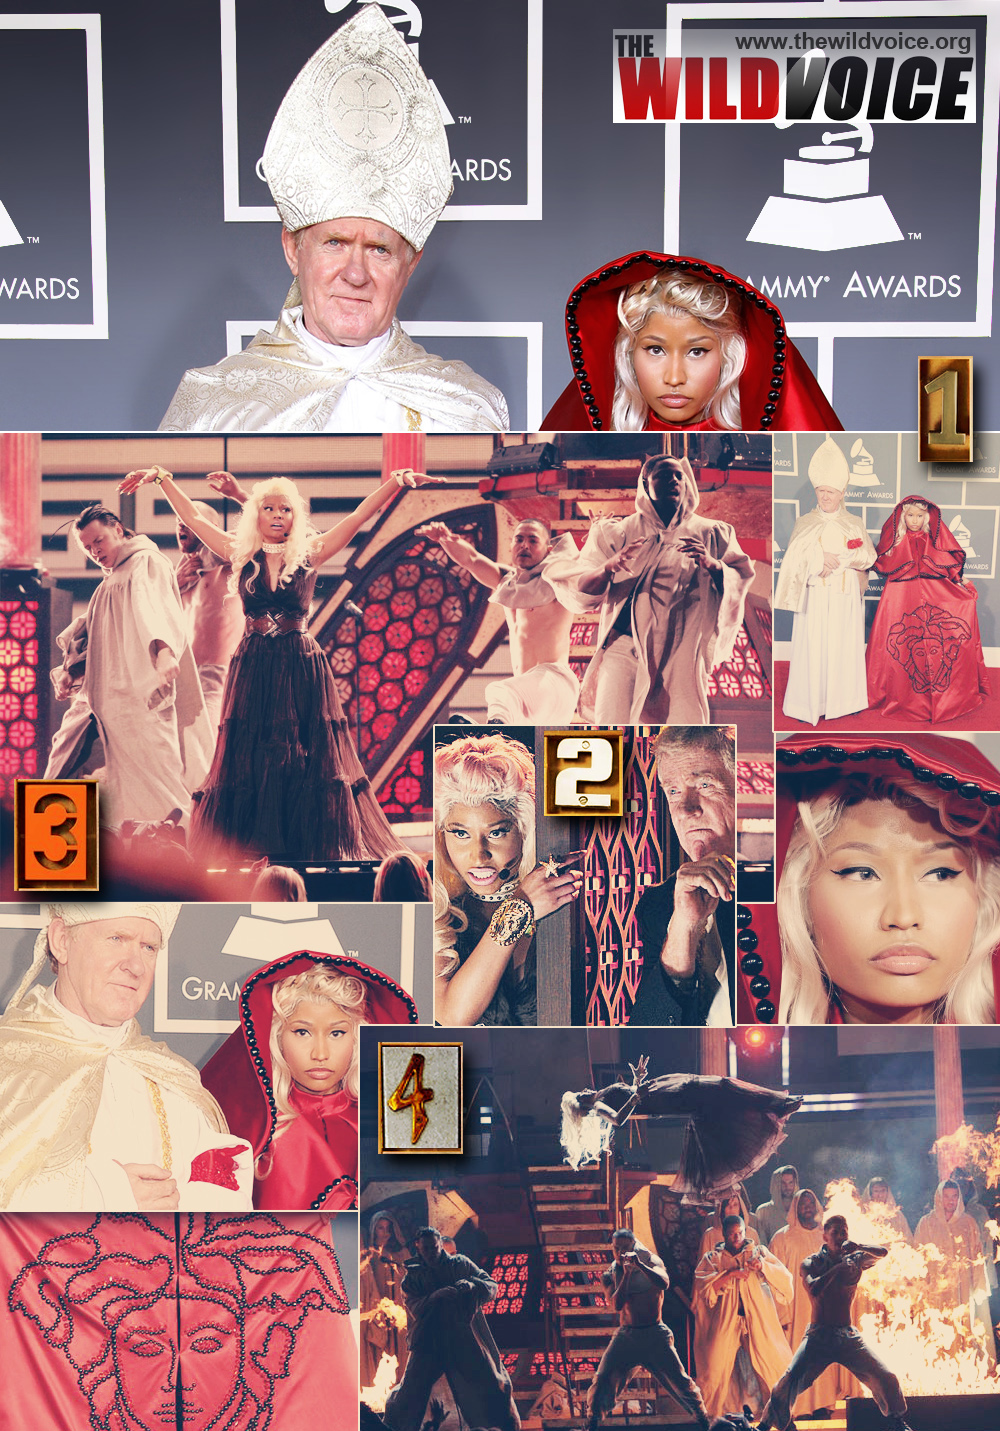 Illuminati, The WILD VOICE, Nicki Minaj, Pope, False Prophet, Vatican, Maria Divine Mercy, Synod